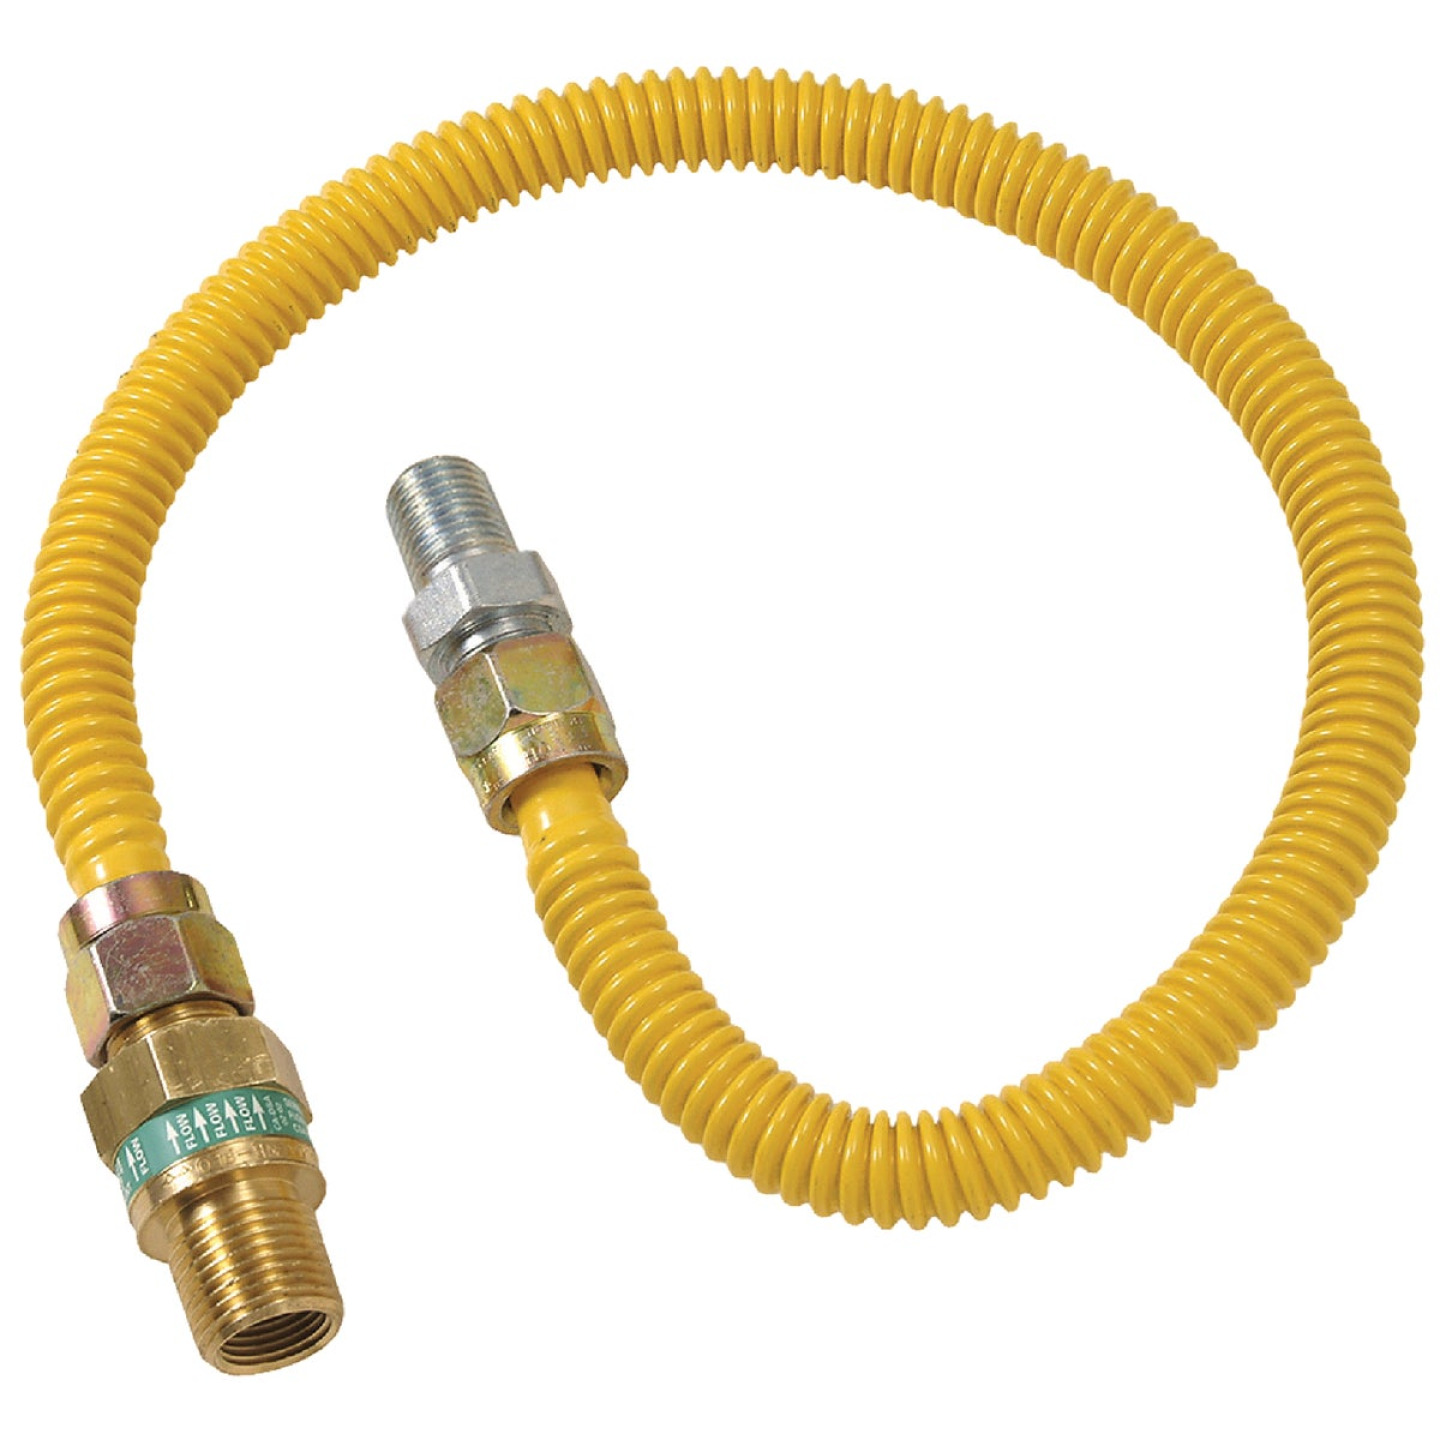 Dormont 1/2 In. OD x 60 In. Coated Stainless Steel Gas Connector, 1/2 In. MIP (Tapped 3/8 In. FIP) x 1/2 In. MIP SmartSense Image 1